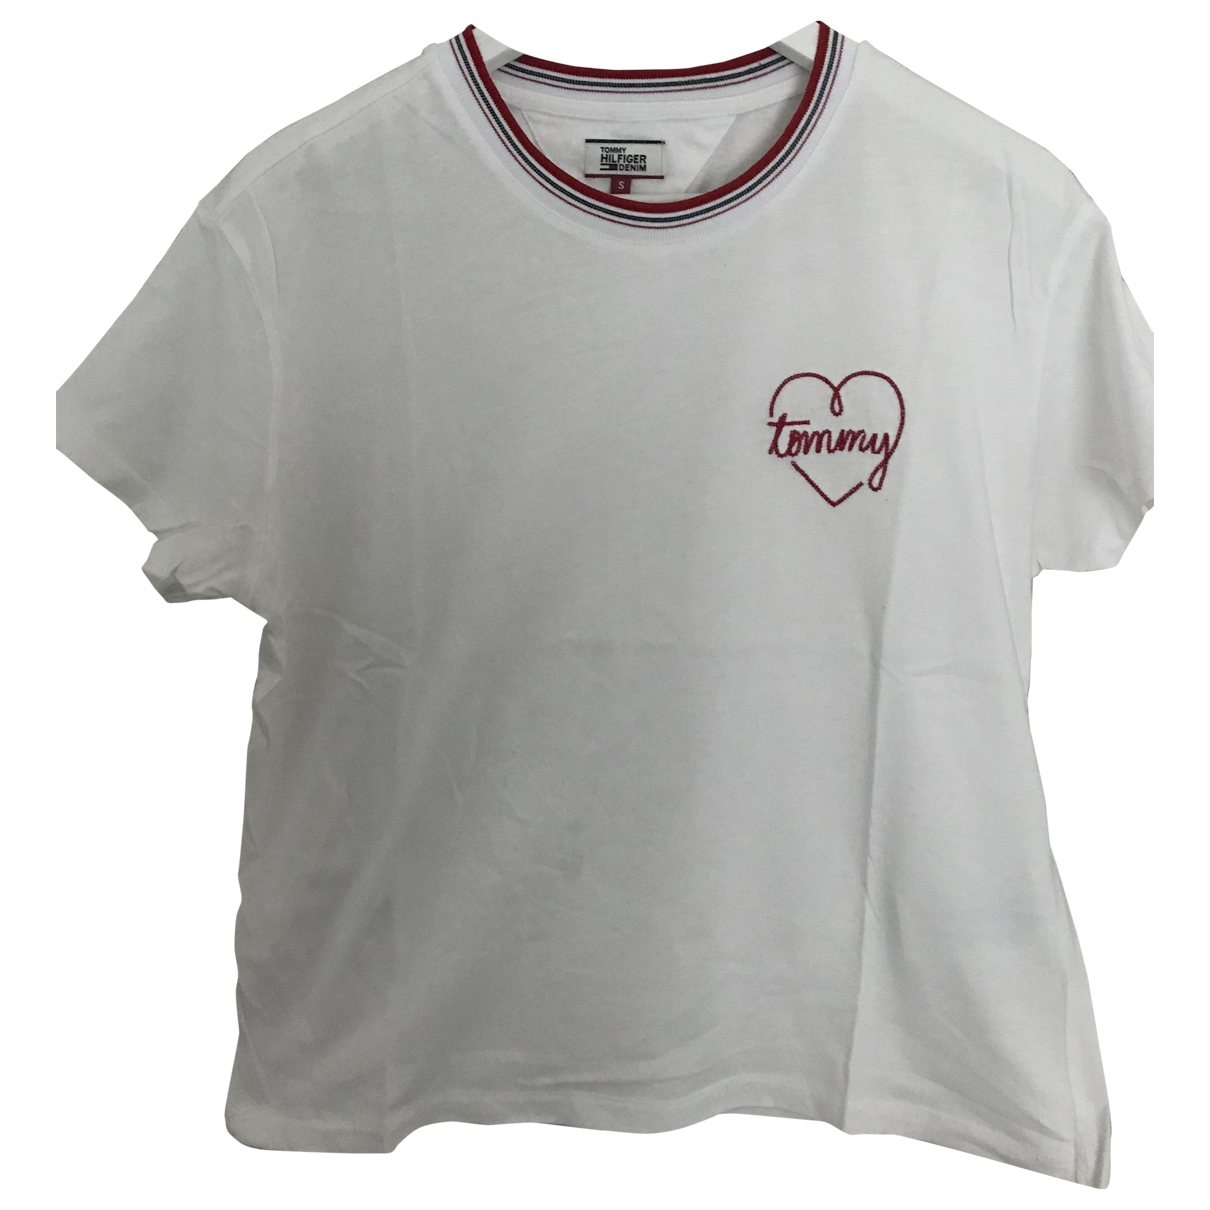 Tommy Hilfiger \N White Cotton  top for Women S International